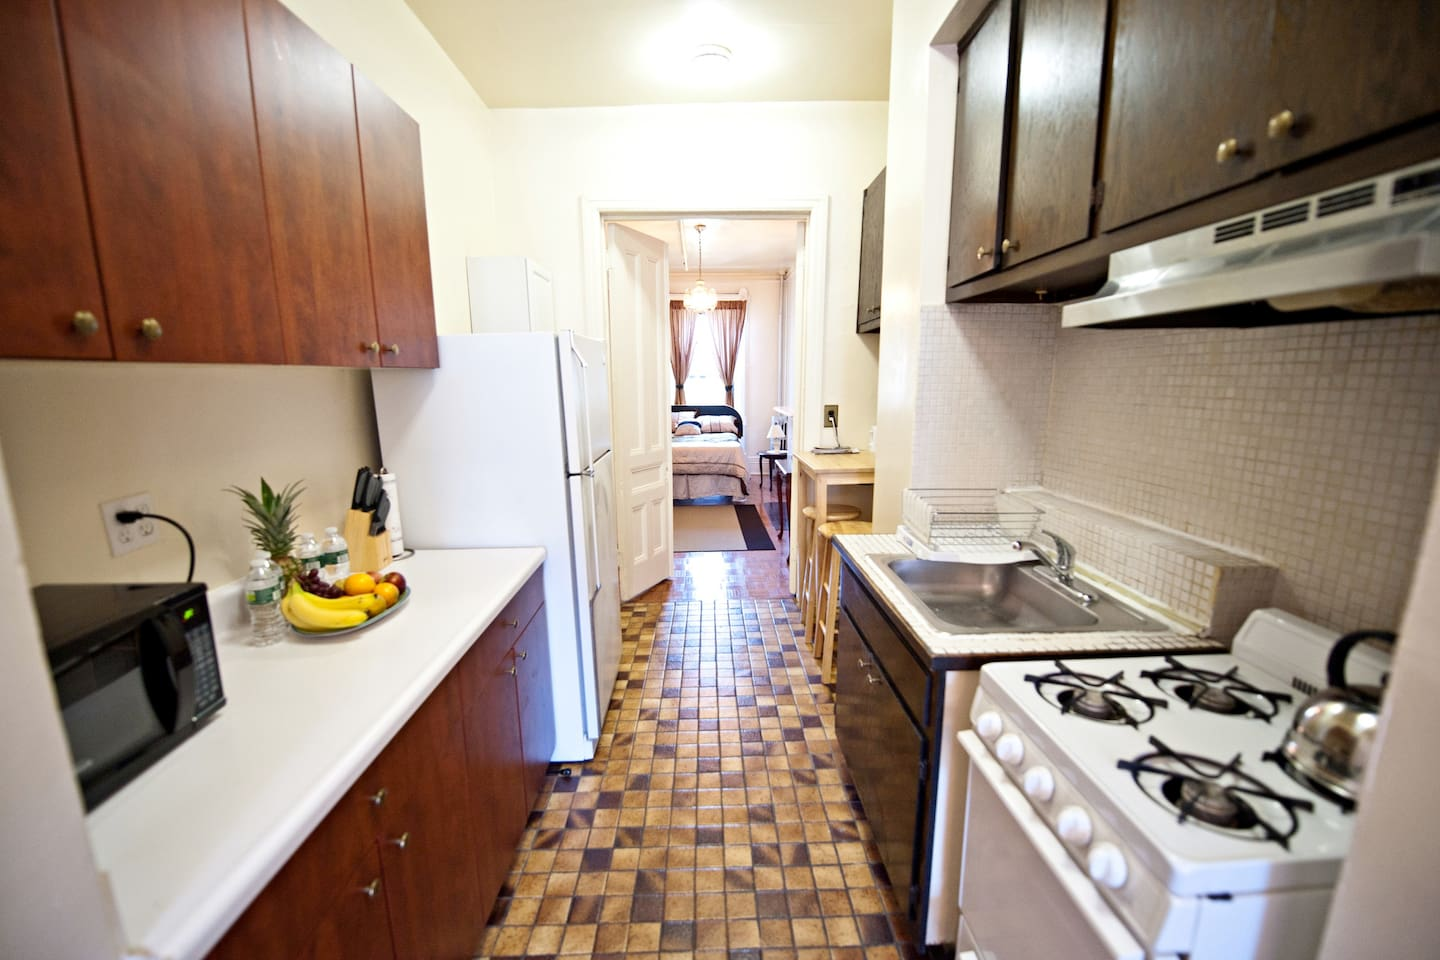 A spacious kitchen with water and fruits to welcome the guests